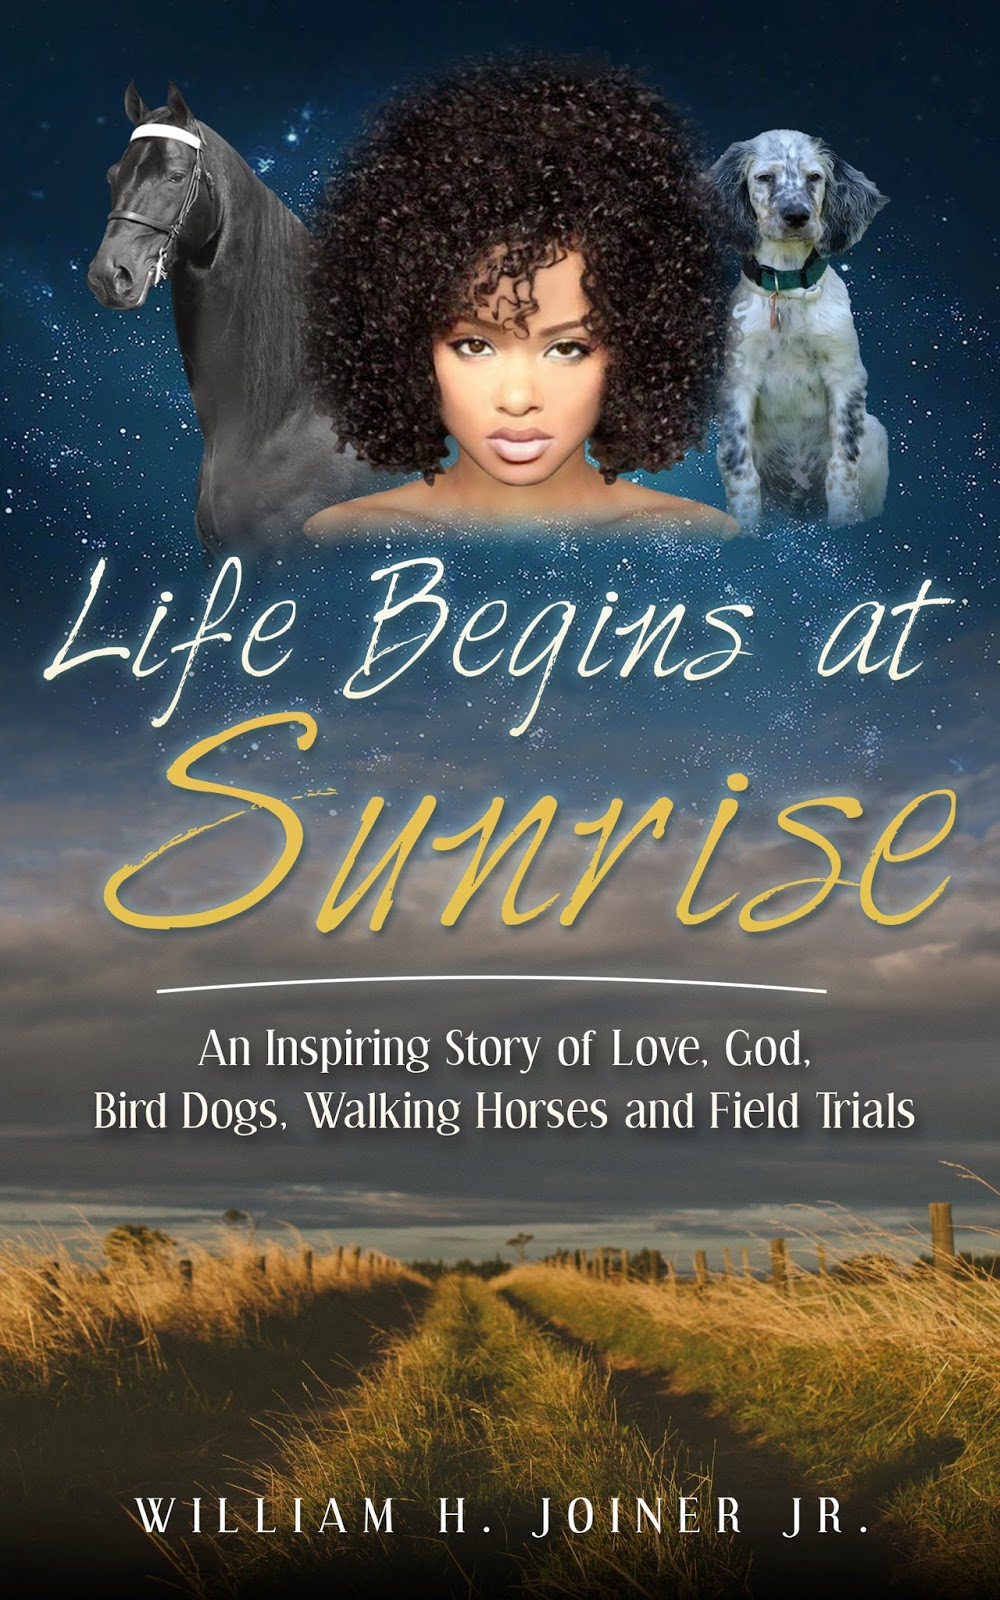 http://www.amazon.com/Life-Begins-Sunrise-Inspiring-Walking-ebook/dp/B00KLM7C3U/ref=tmm_kin_swatch_0?_encoding=UTF8&sr=&qid=